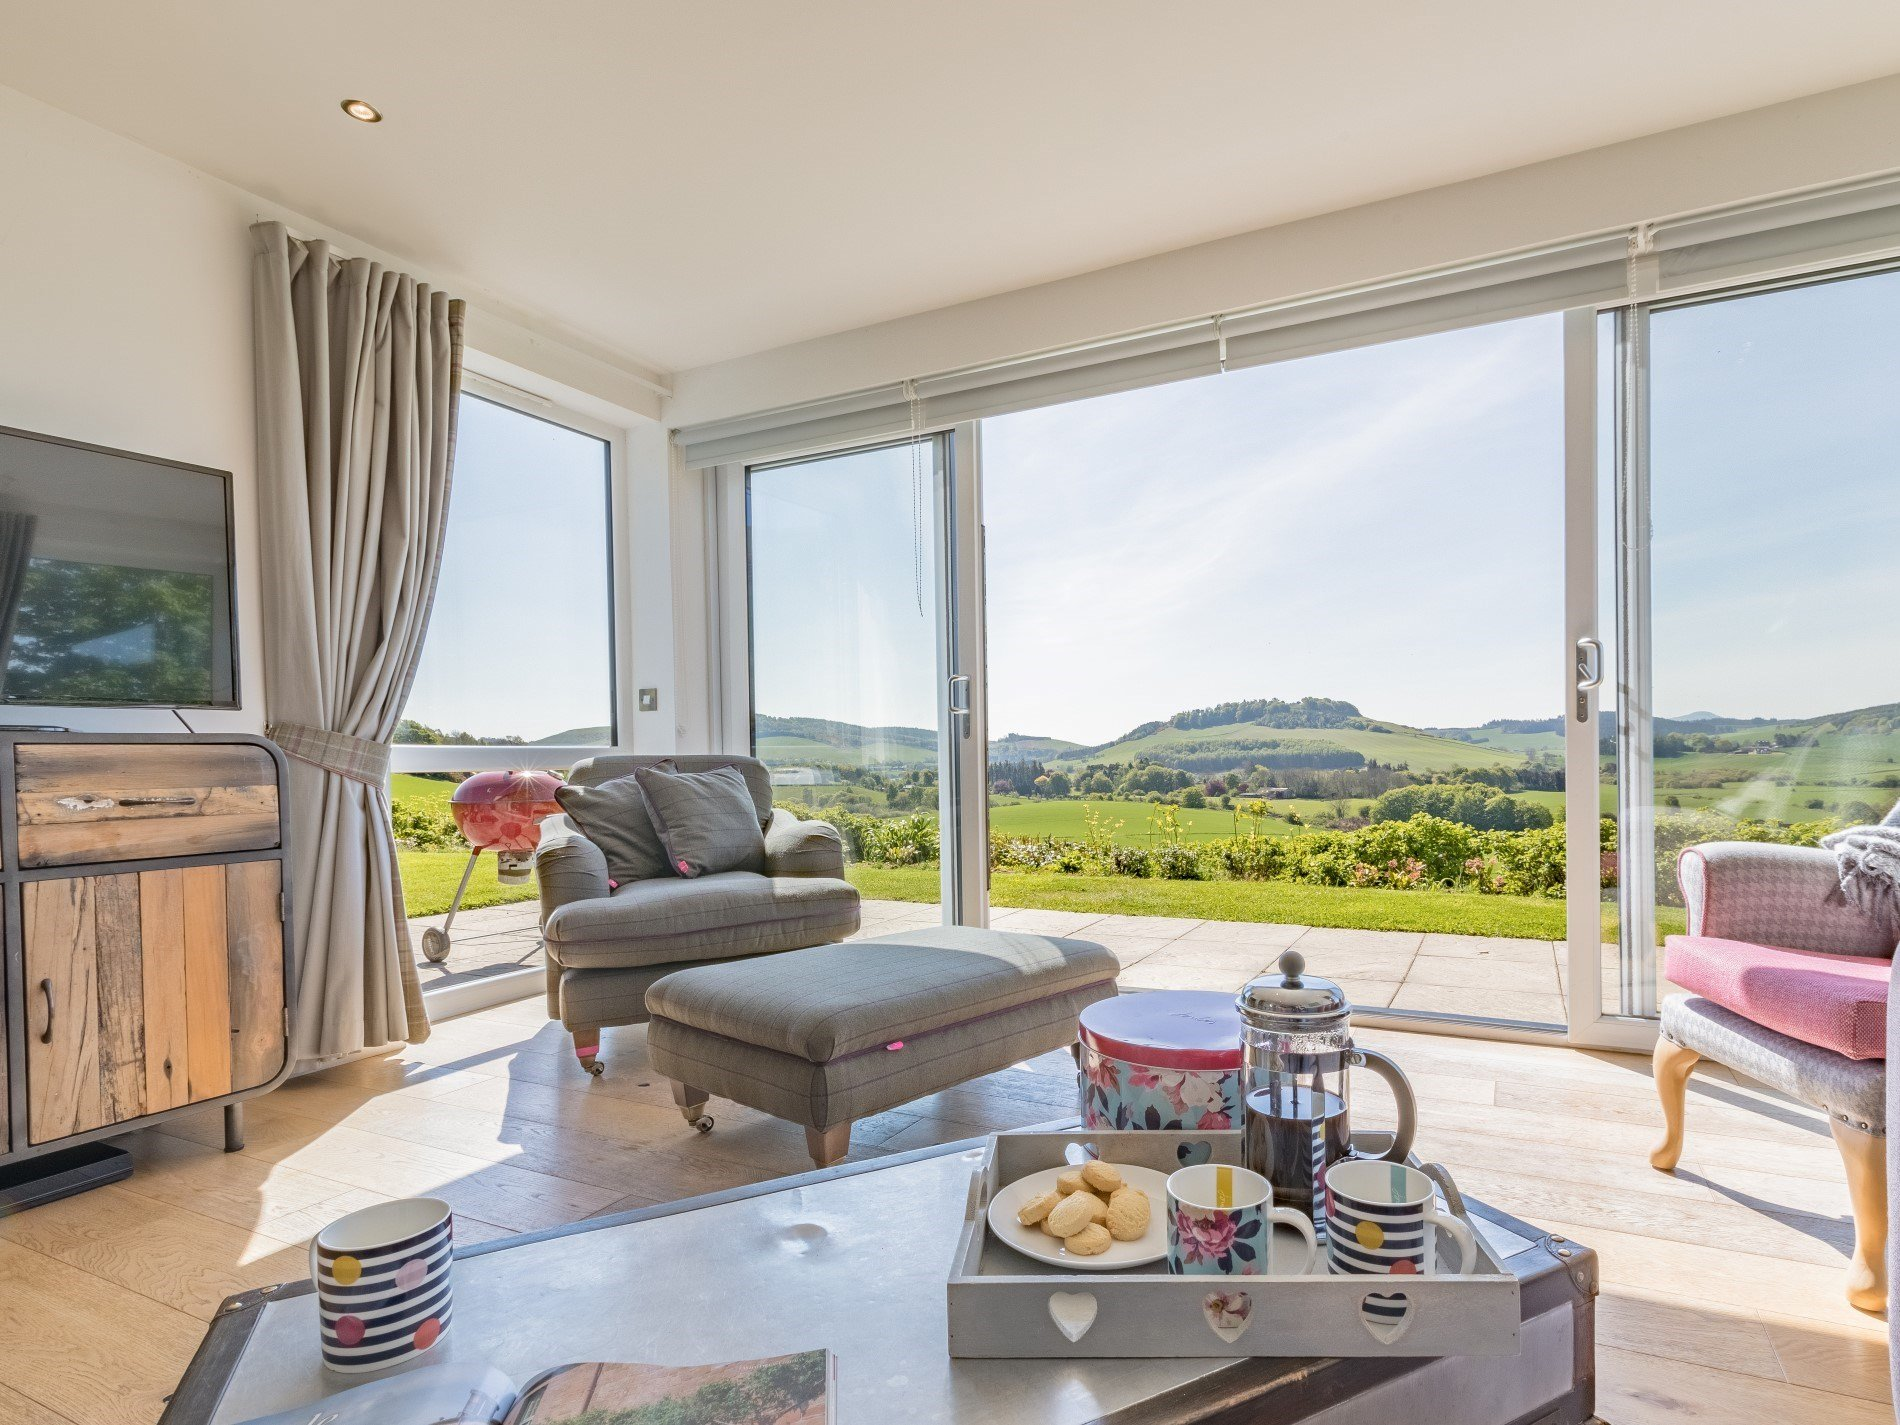 3 Bedroom House in Fife, Perthshire, Angus and Fife